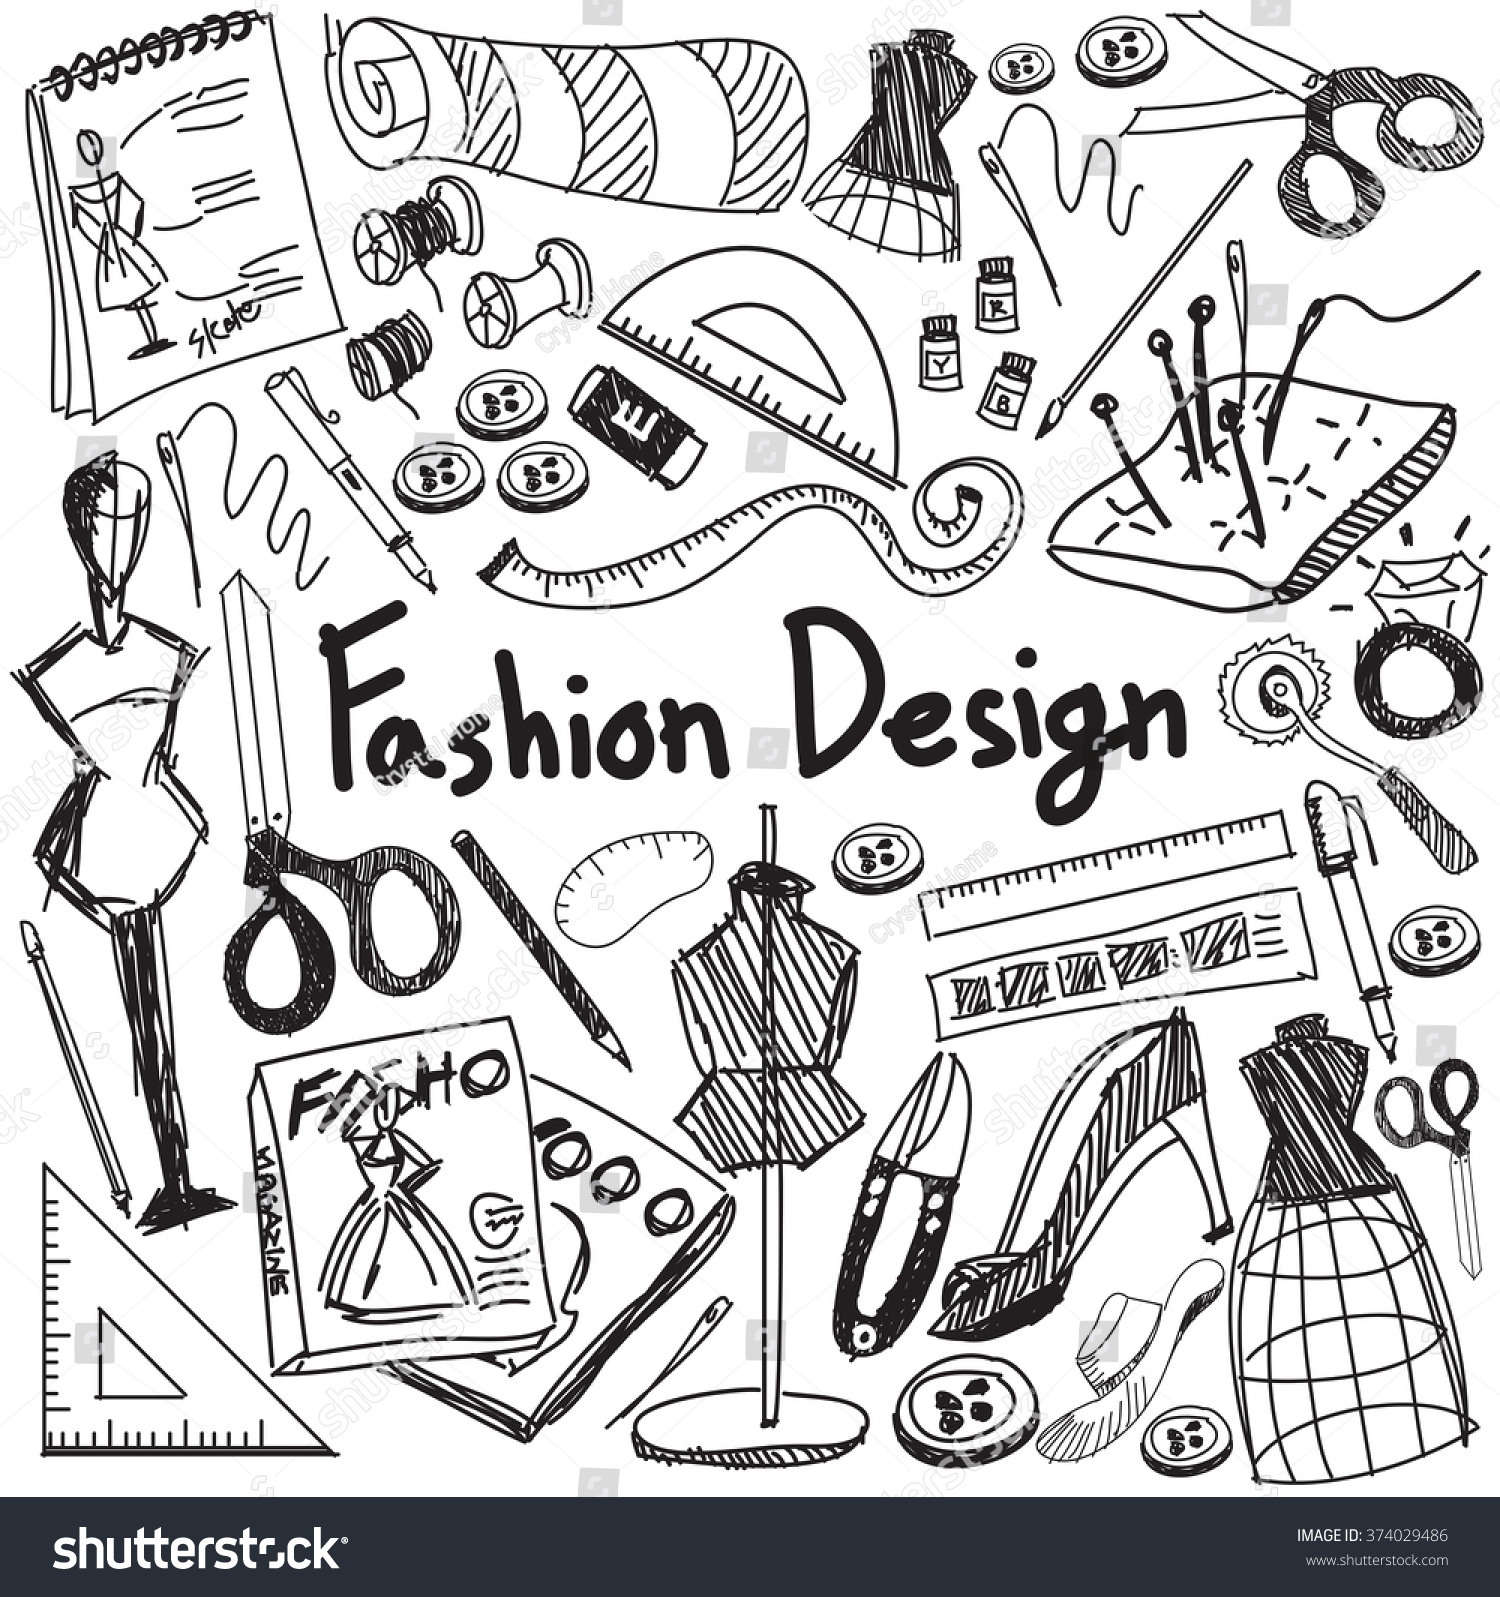 Fashion designing book free download 62